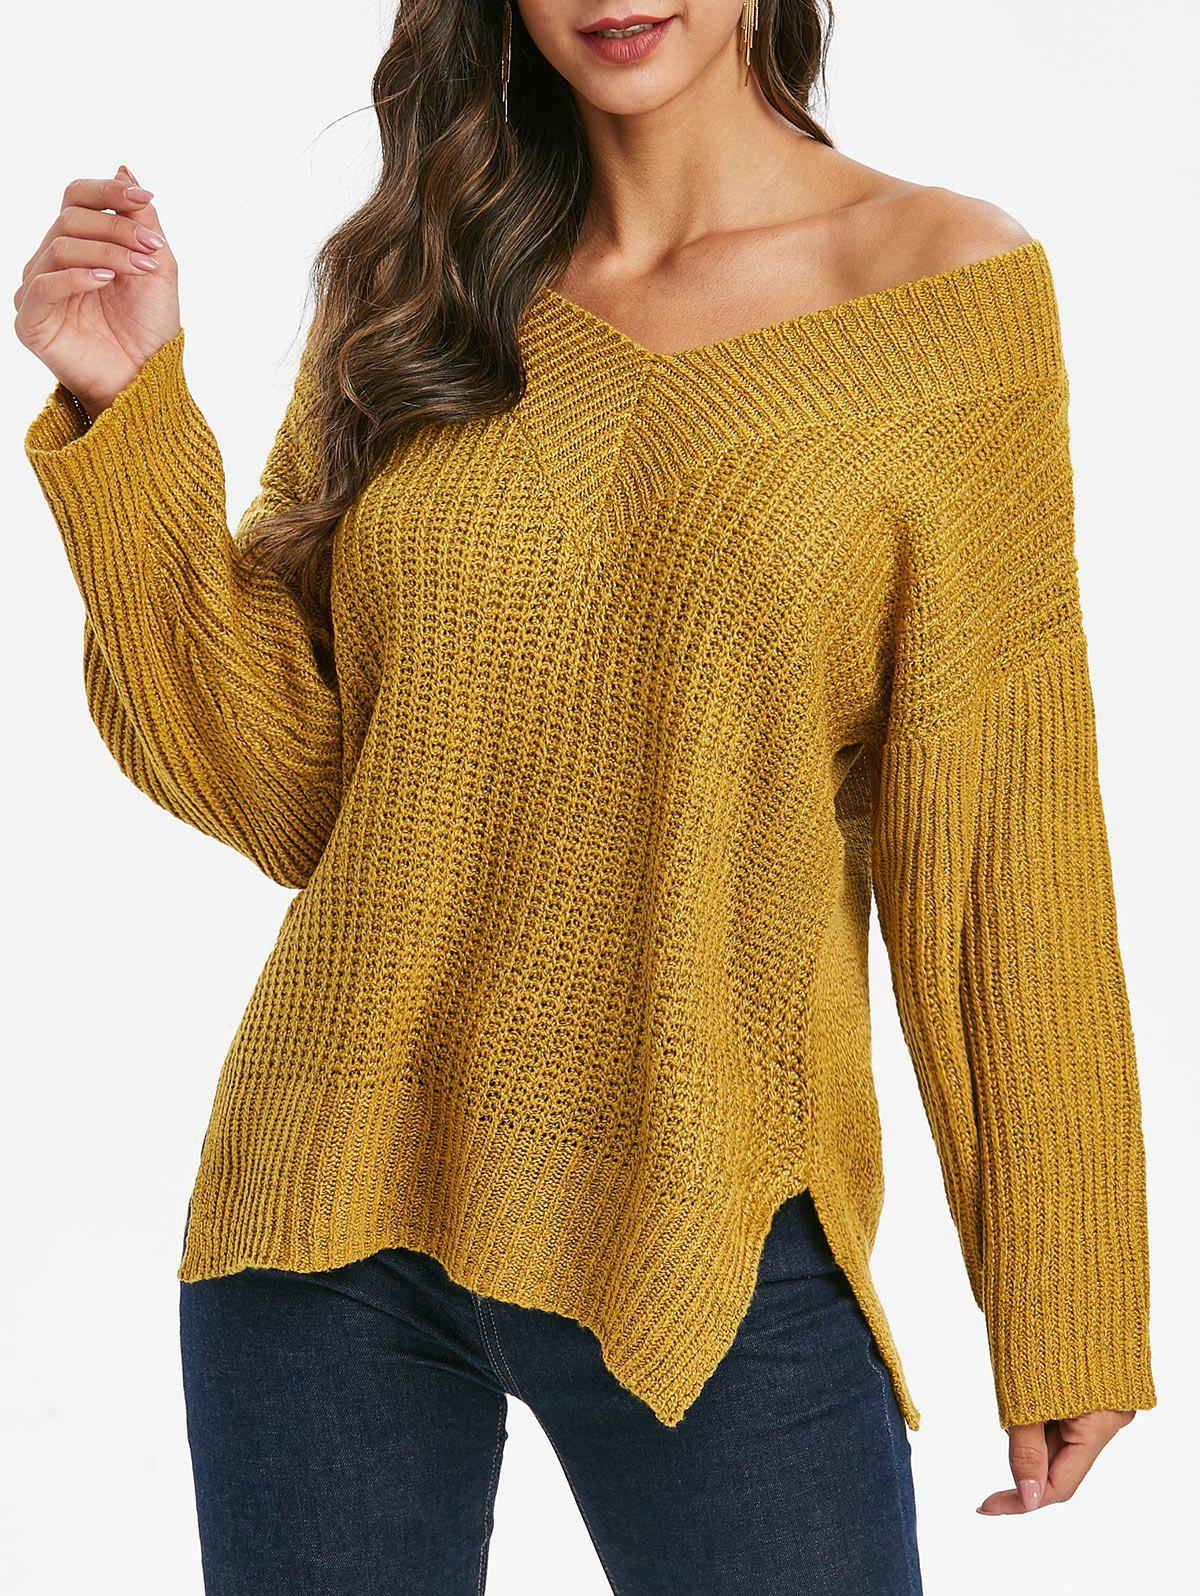 Skew Neck Drop Shoulder Slit Sweater - ORANGE GOLD XL